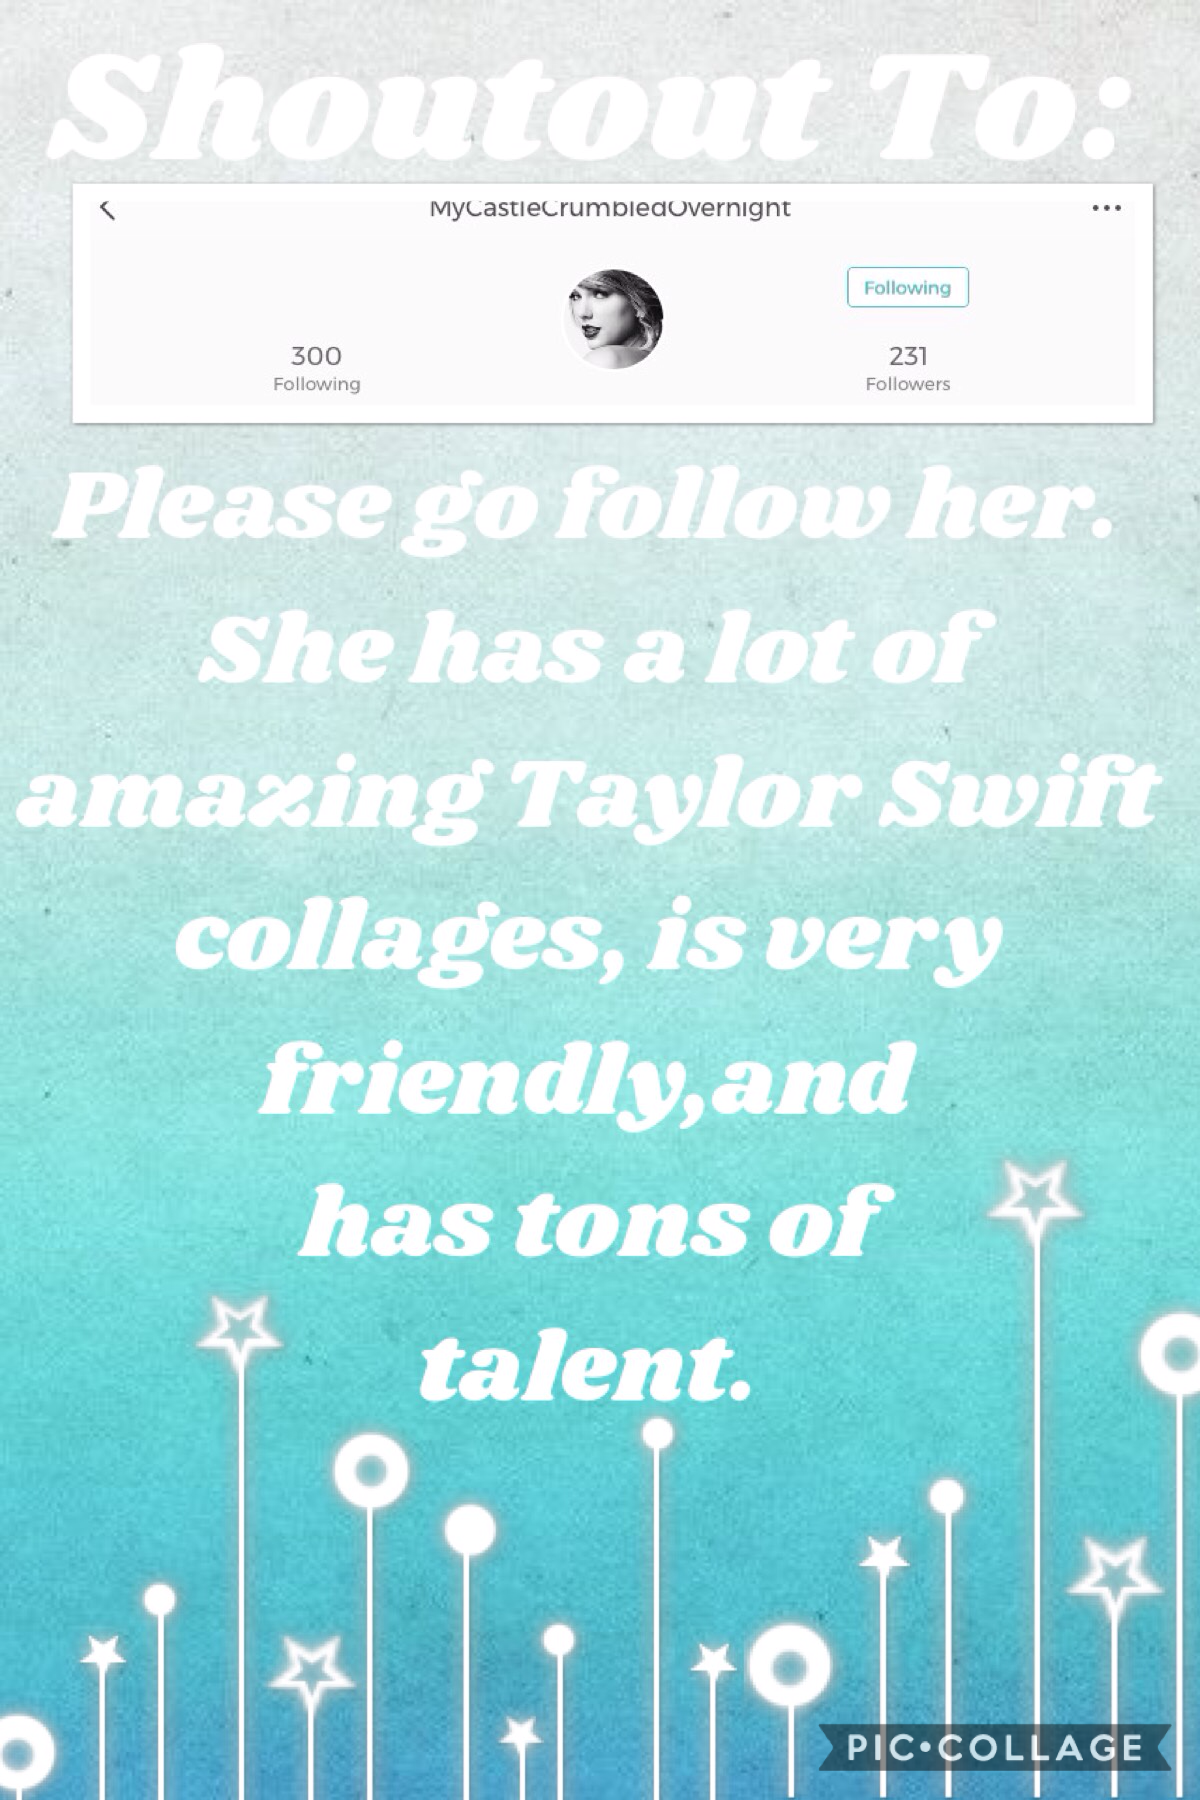 Shoutout to... EverythingCrumbledMyReputation she is so amazing and deserves to have many followers and features.